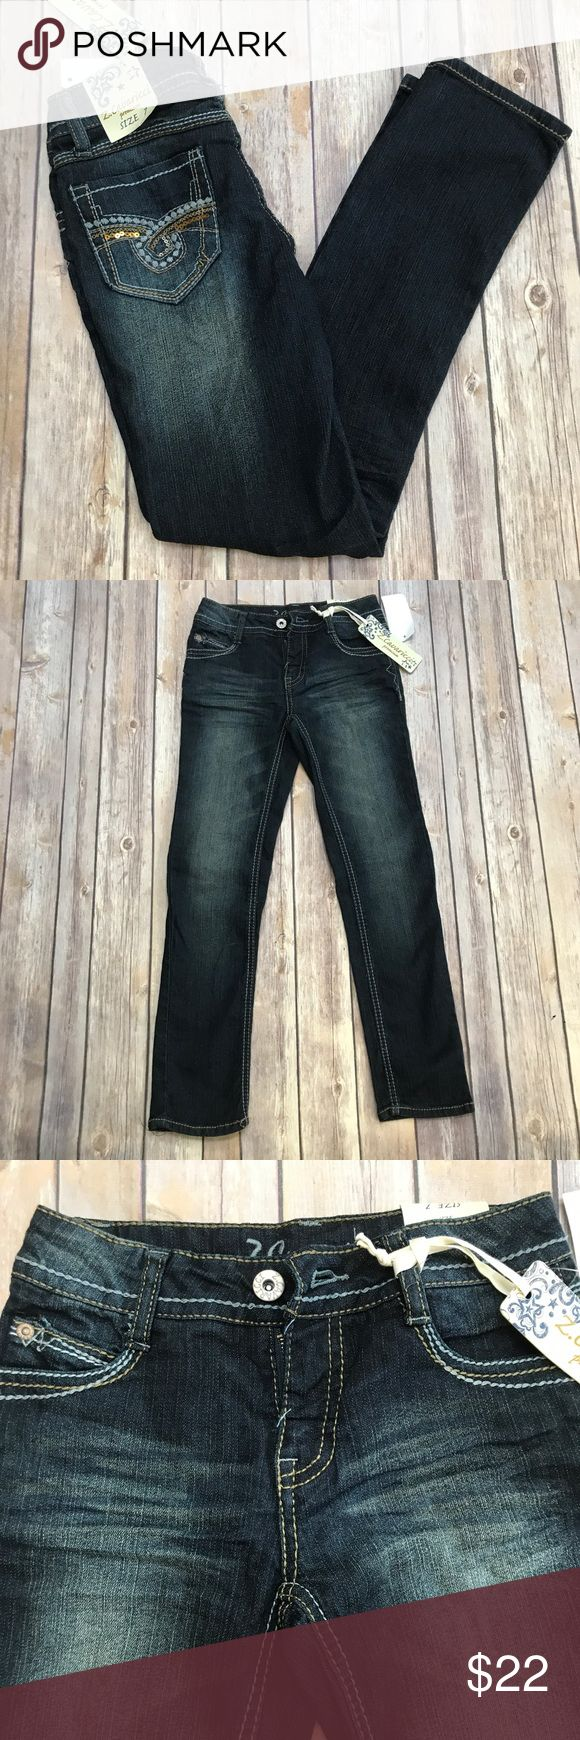 NWT- Girls Z-Cavaricci Jeans, Size 7 Girls whiskered soft & stretchy jean material. Dark wash, double stitching, button closure/ zipper front. Super cute back pocket detail, trendy fit. NWT (New With Tags) Z-Cavarrici Bottoms Jeans